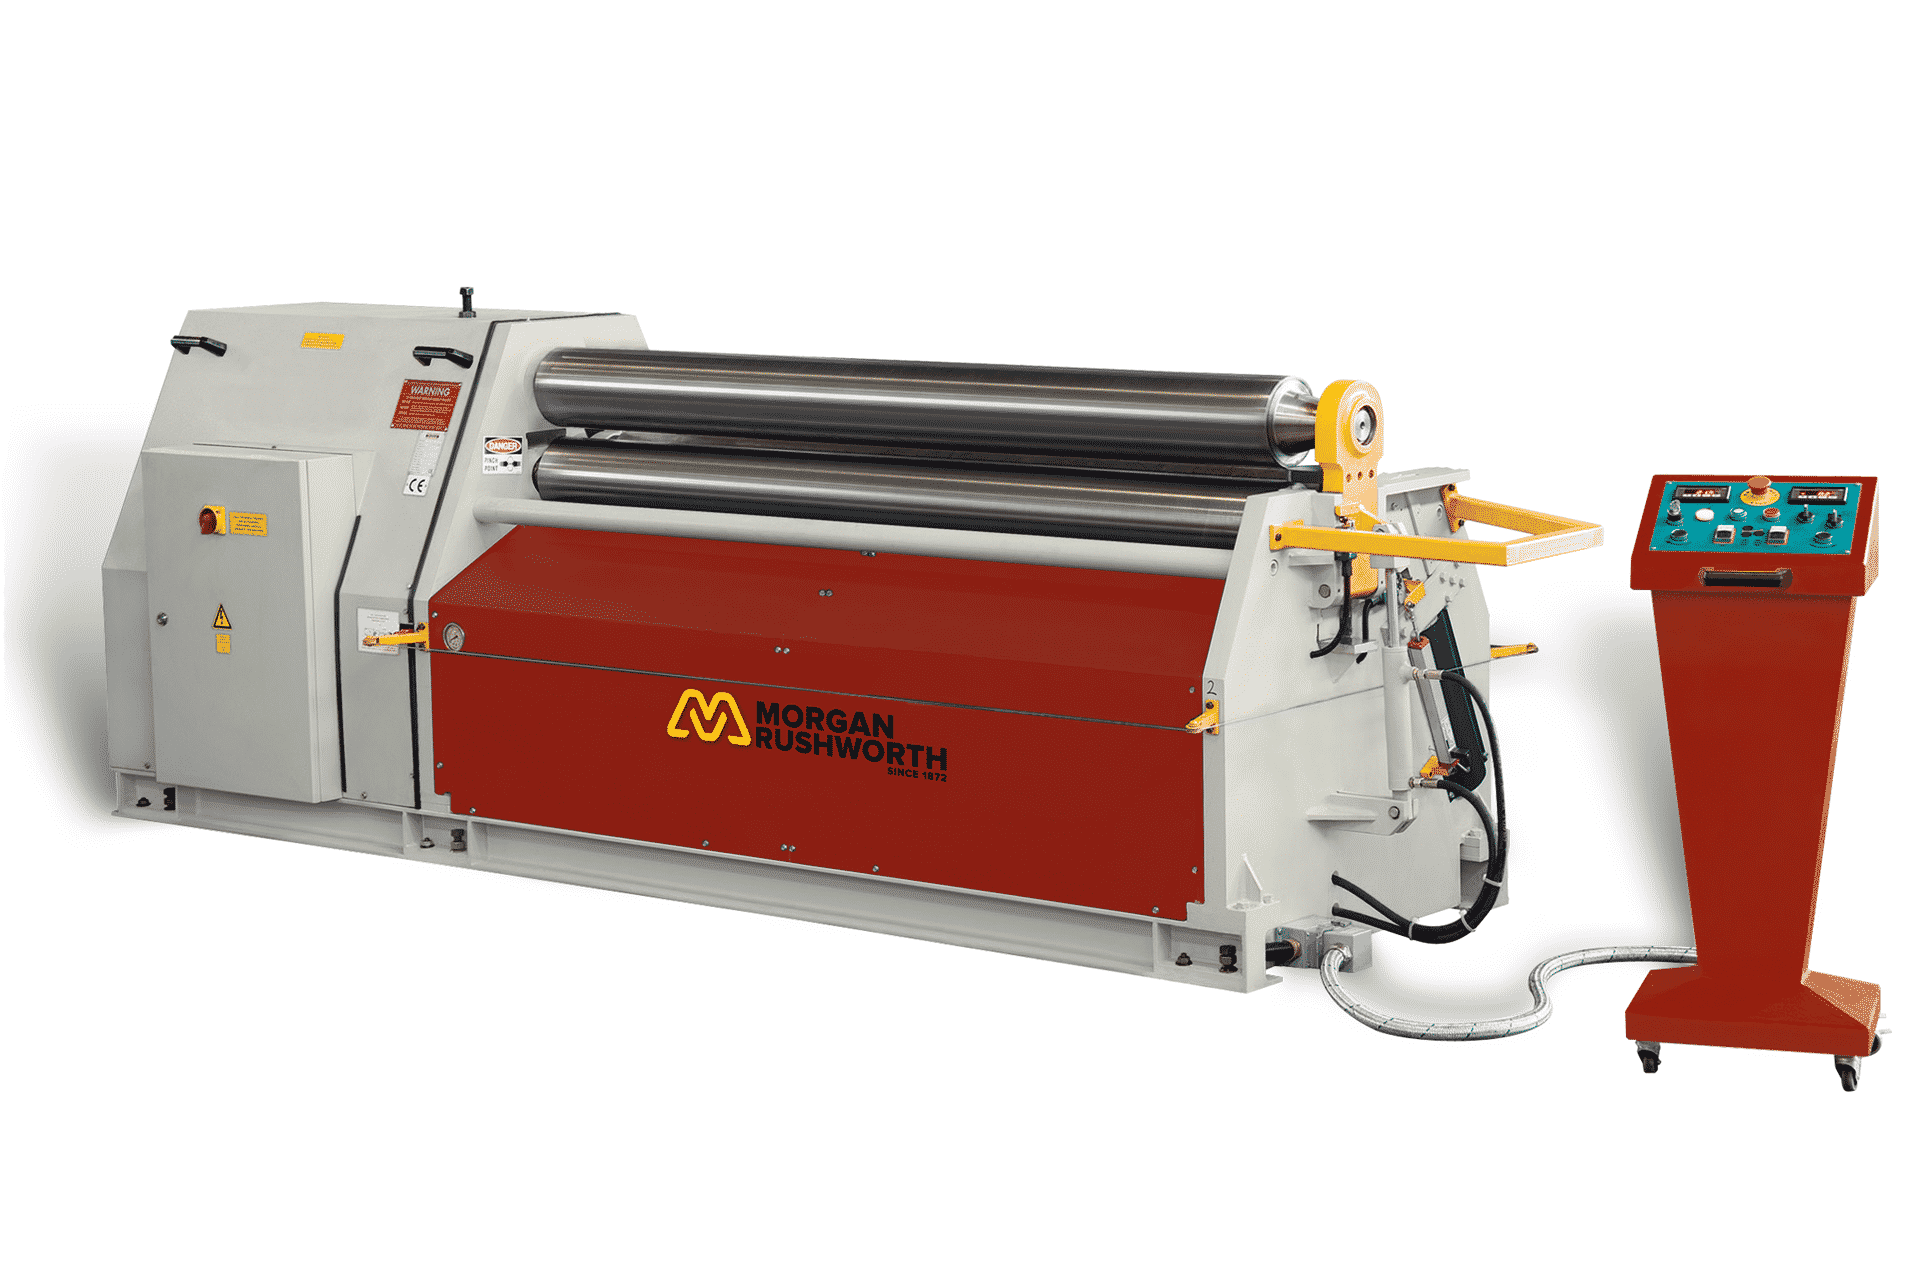 Front view of the Morgan Rushworth ASBH Bending Roll featured with the standard controller